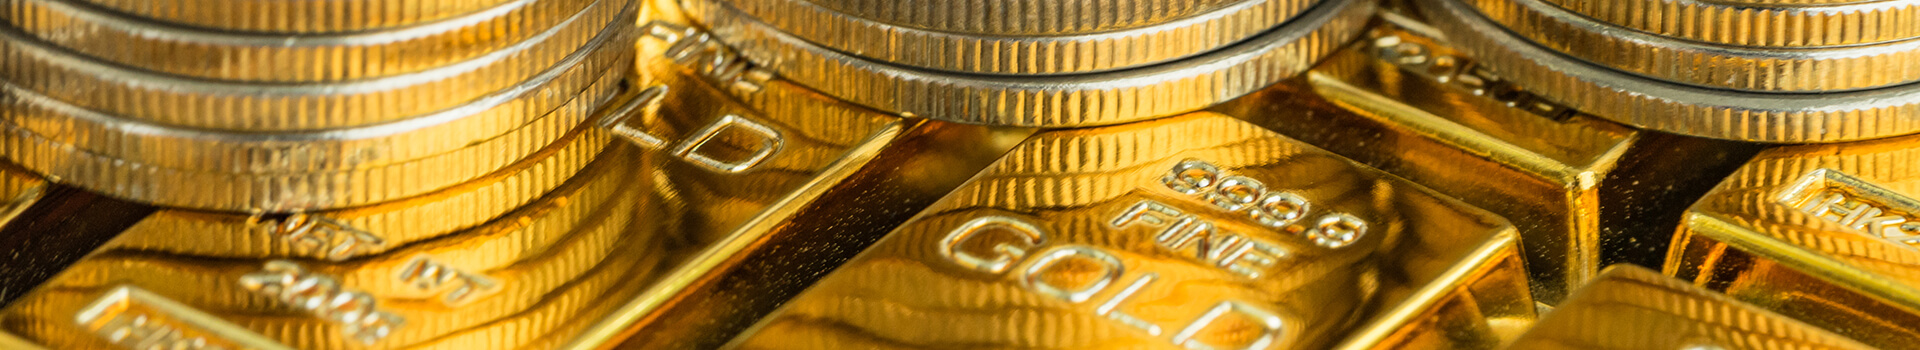 gold bars and coins header.jpg